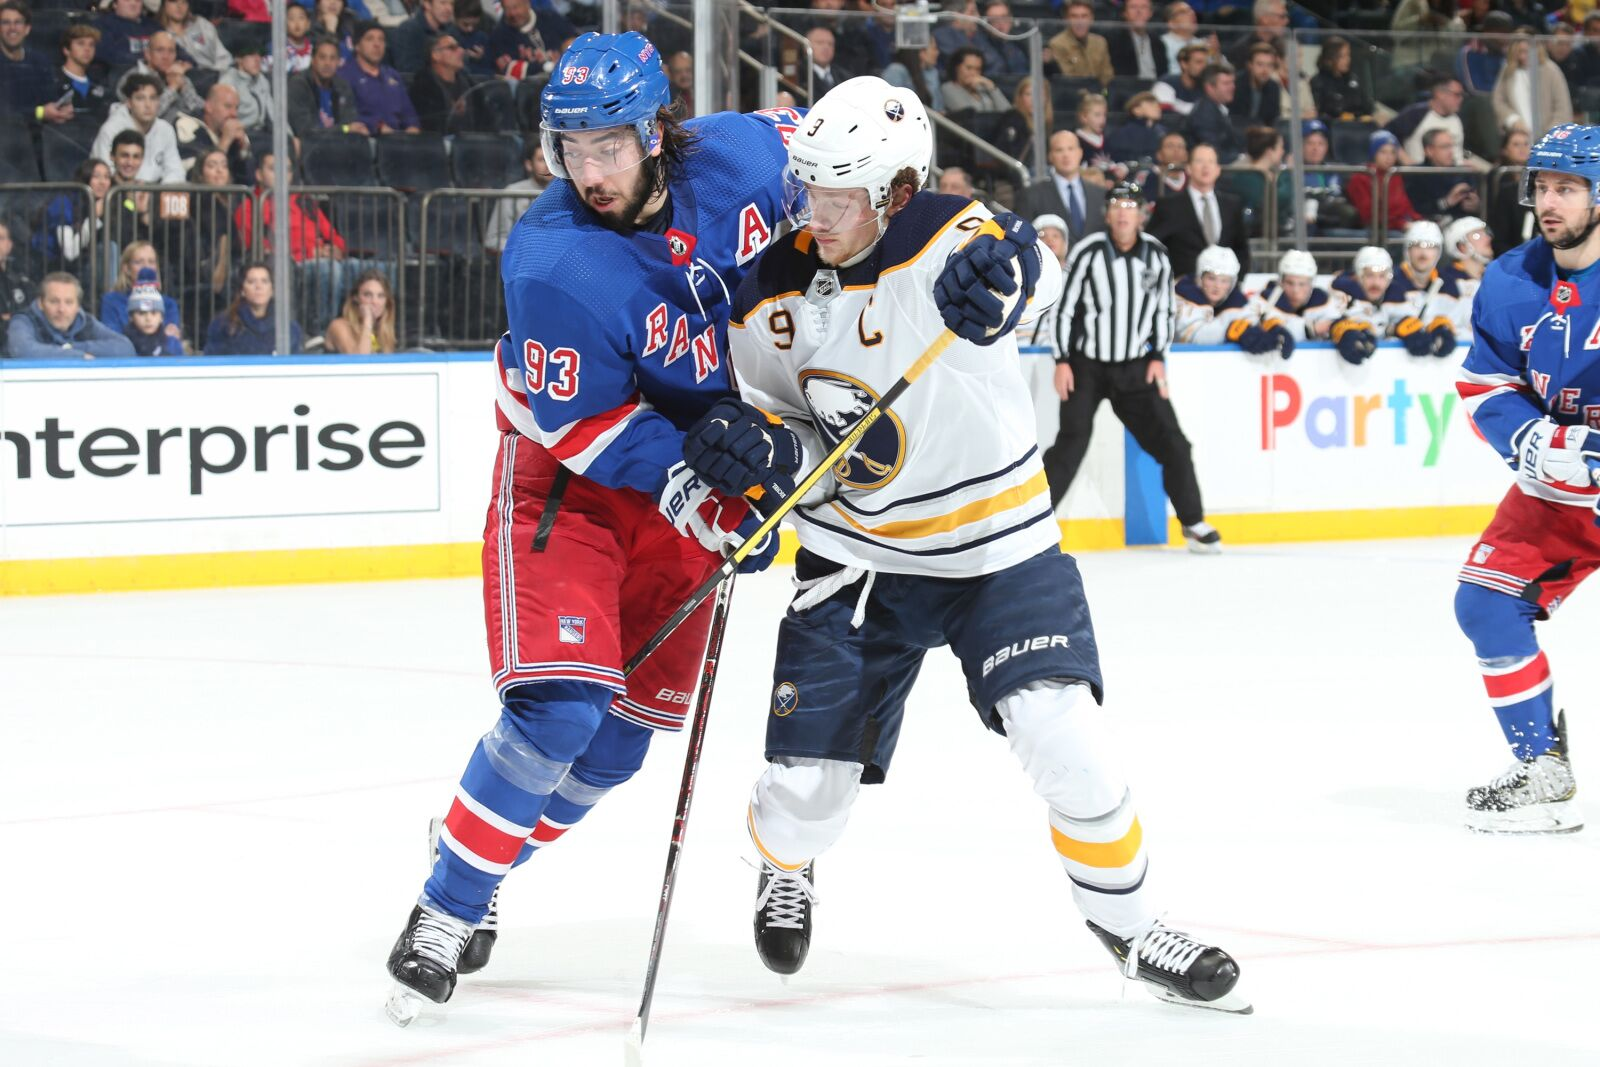 New York Rangers vs Buffalo Sabres: Join the live conversation!